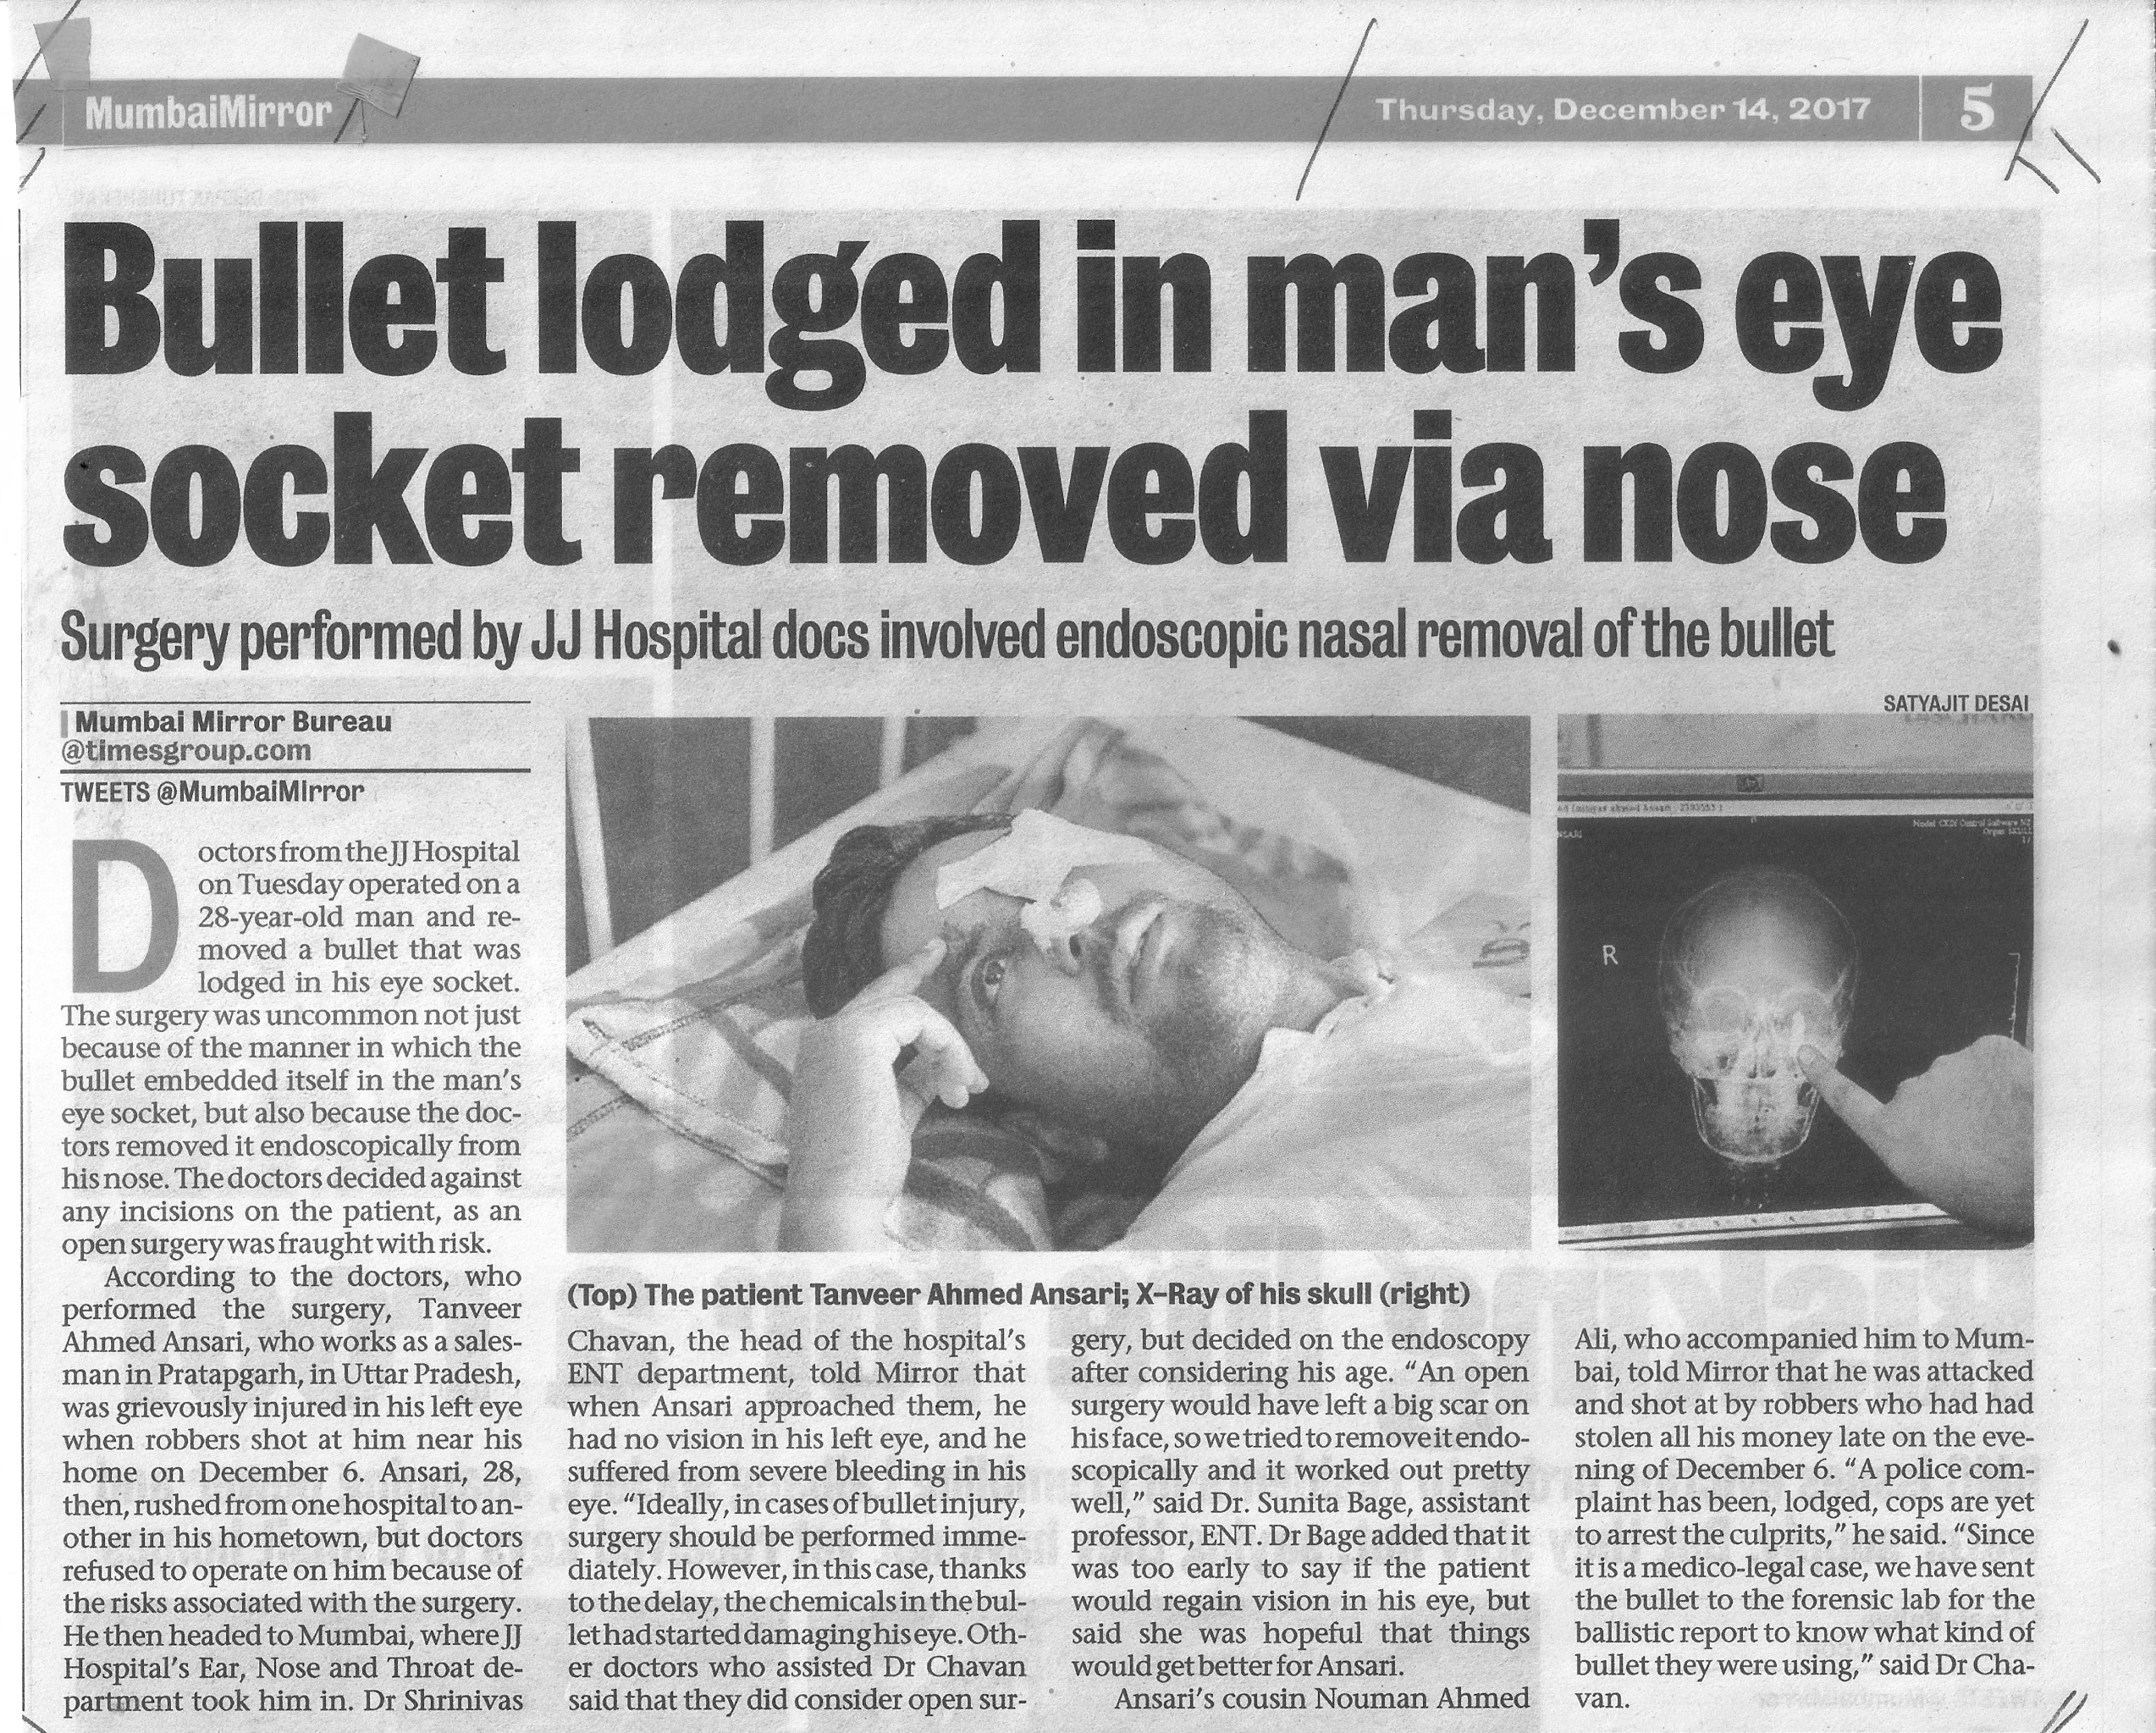 Bullet lodged in man's eye socket removed via nose (Mirror Thu 14 Mar17 pg.5)